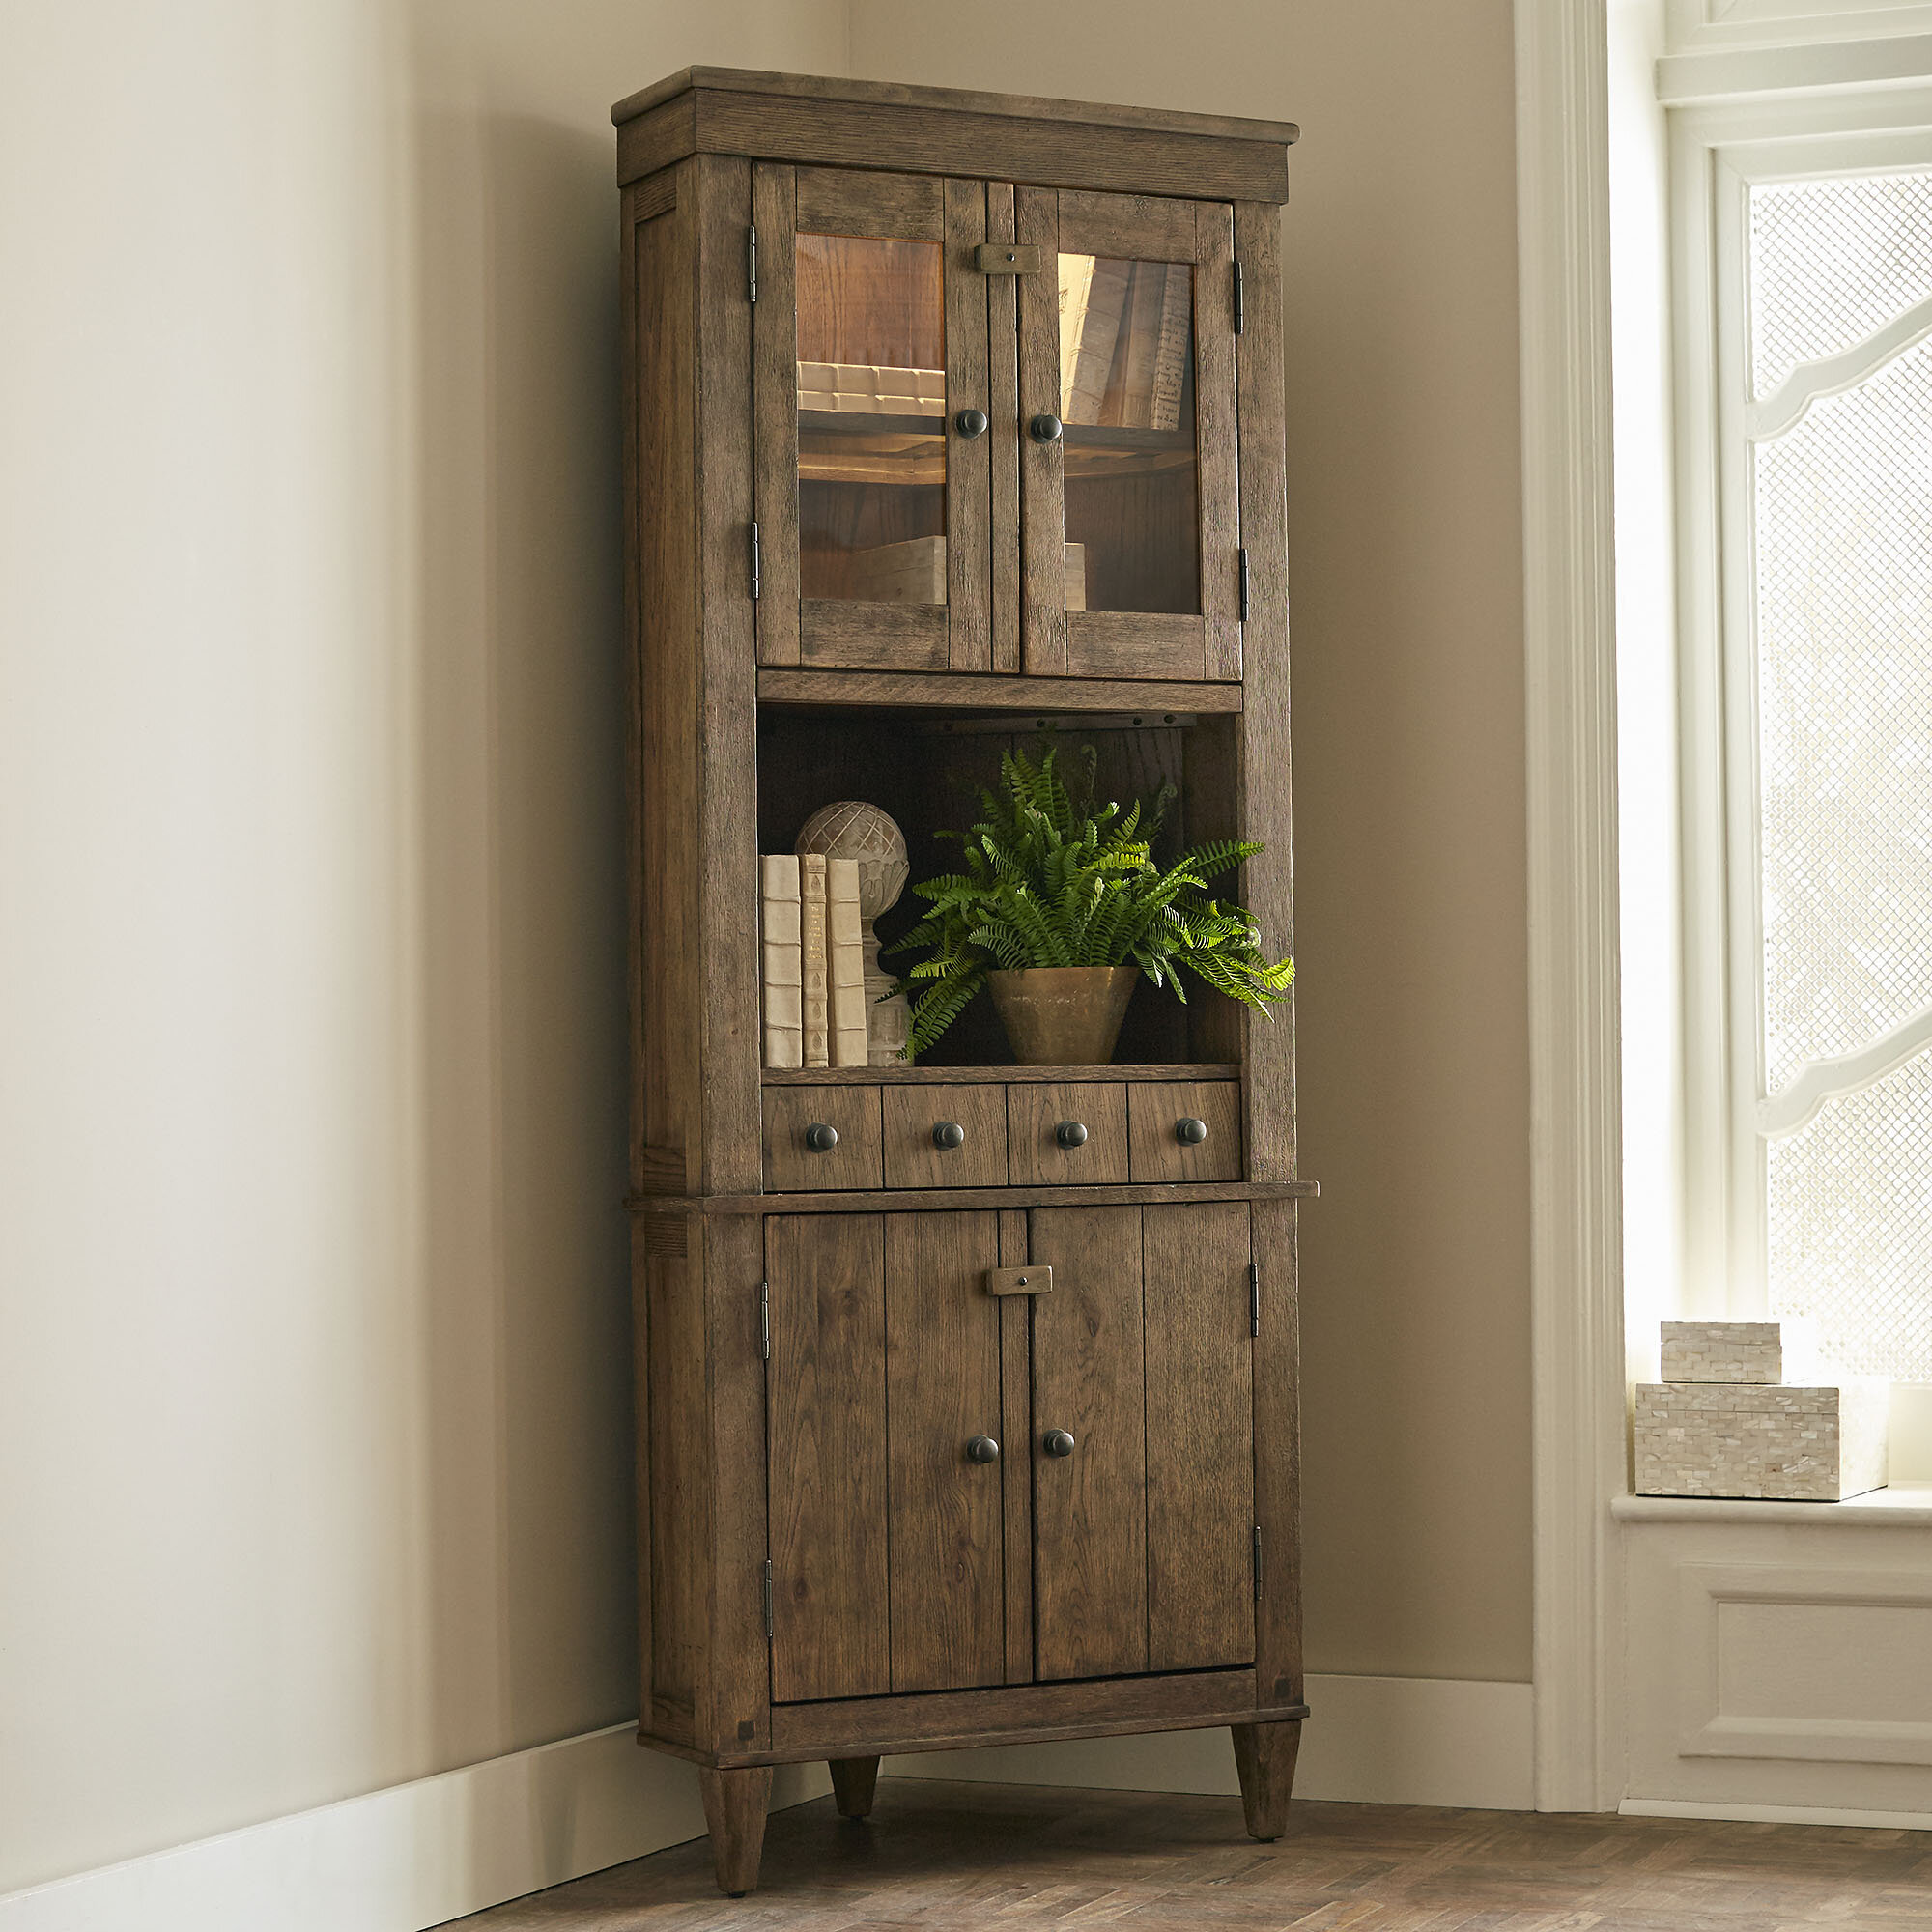 Birch Lane™ Derrickson Corner Cabinet & Reviews | Birch Lane on tables for corners, wall decoration for corners, interior decorating for corners, bathroom vanities for corners, window treatments for corners, kitchen cabinets for corners, chandeliers for corners,